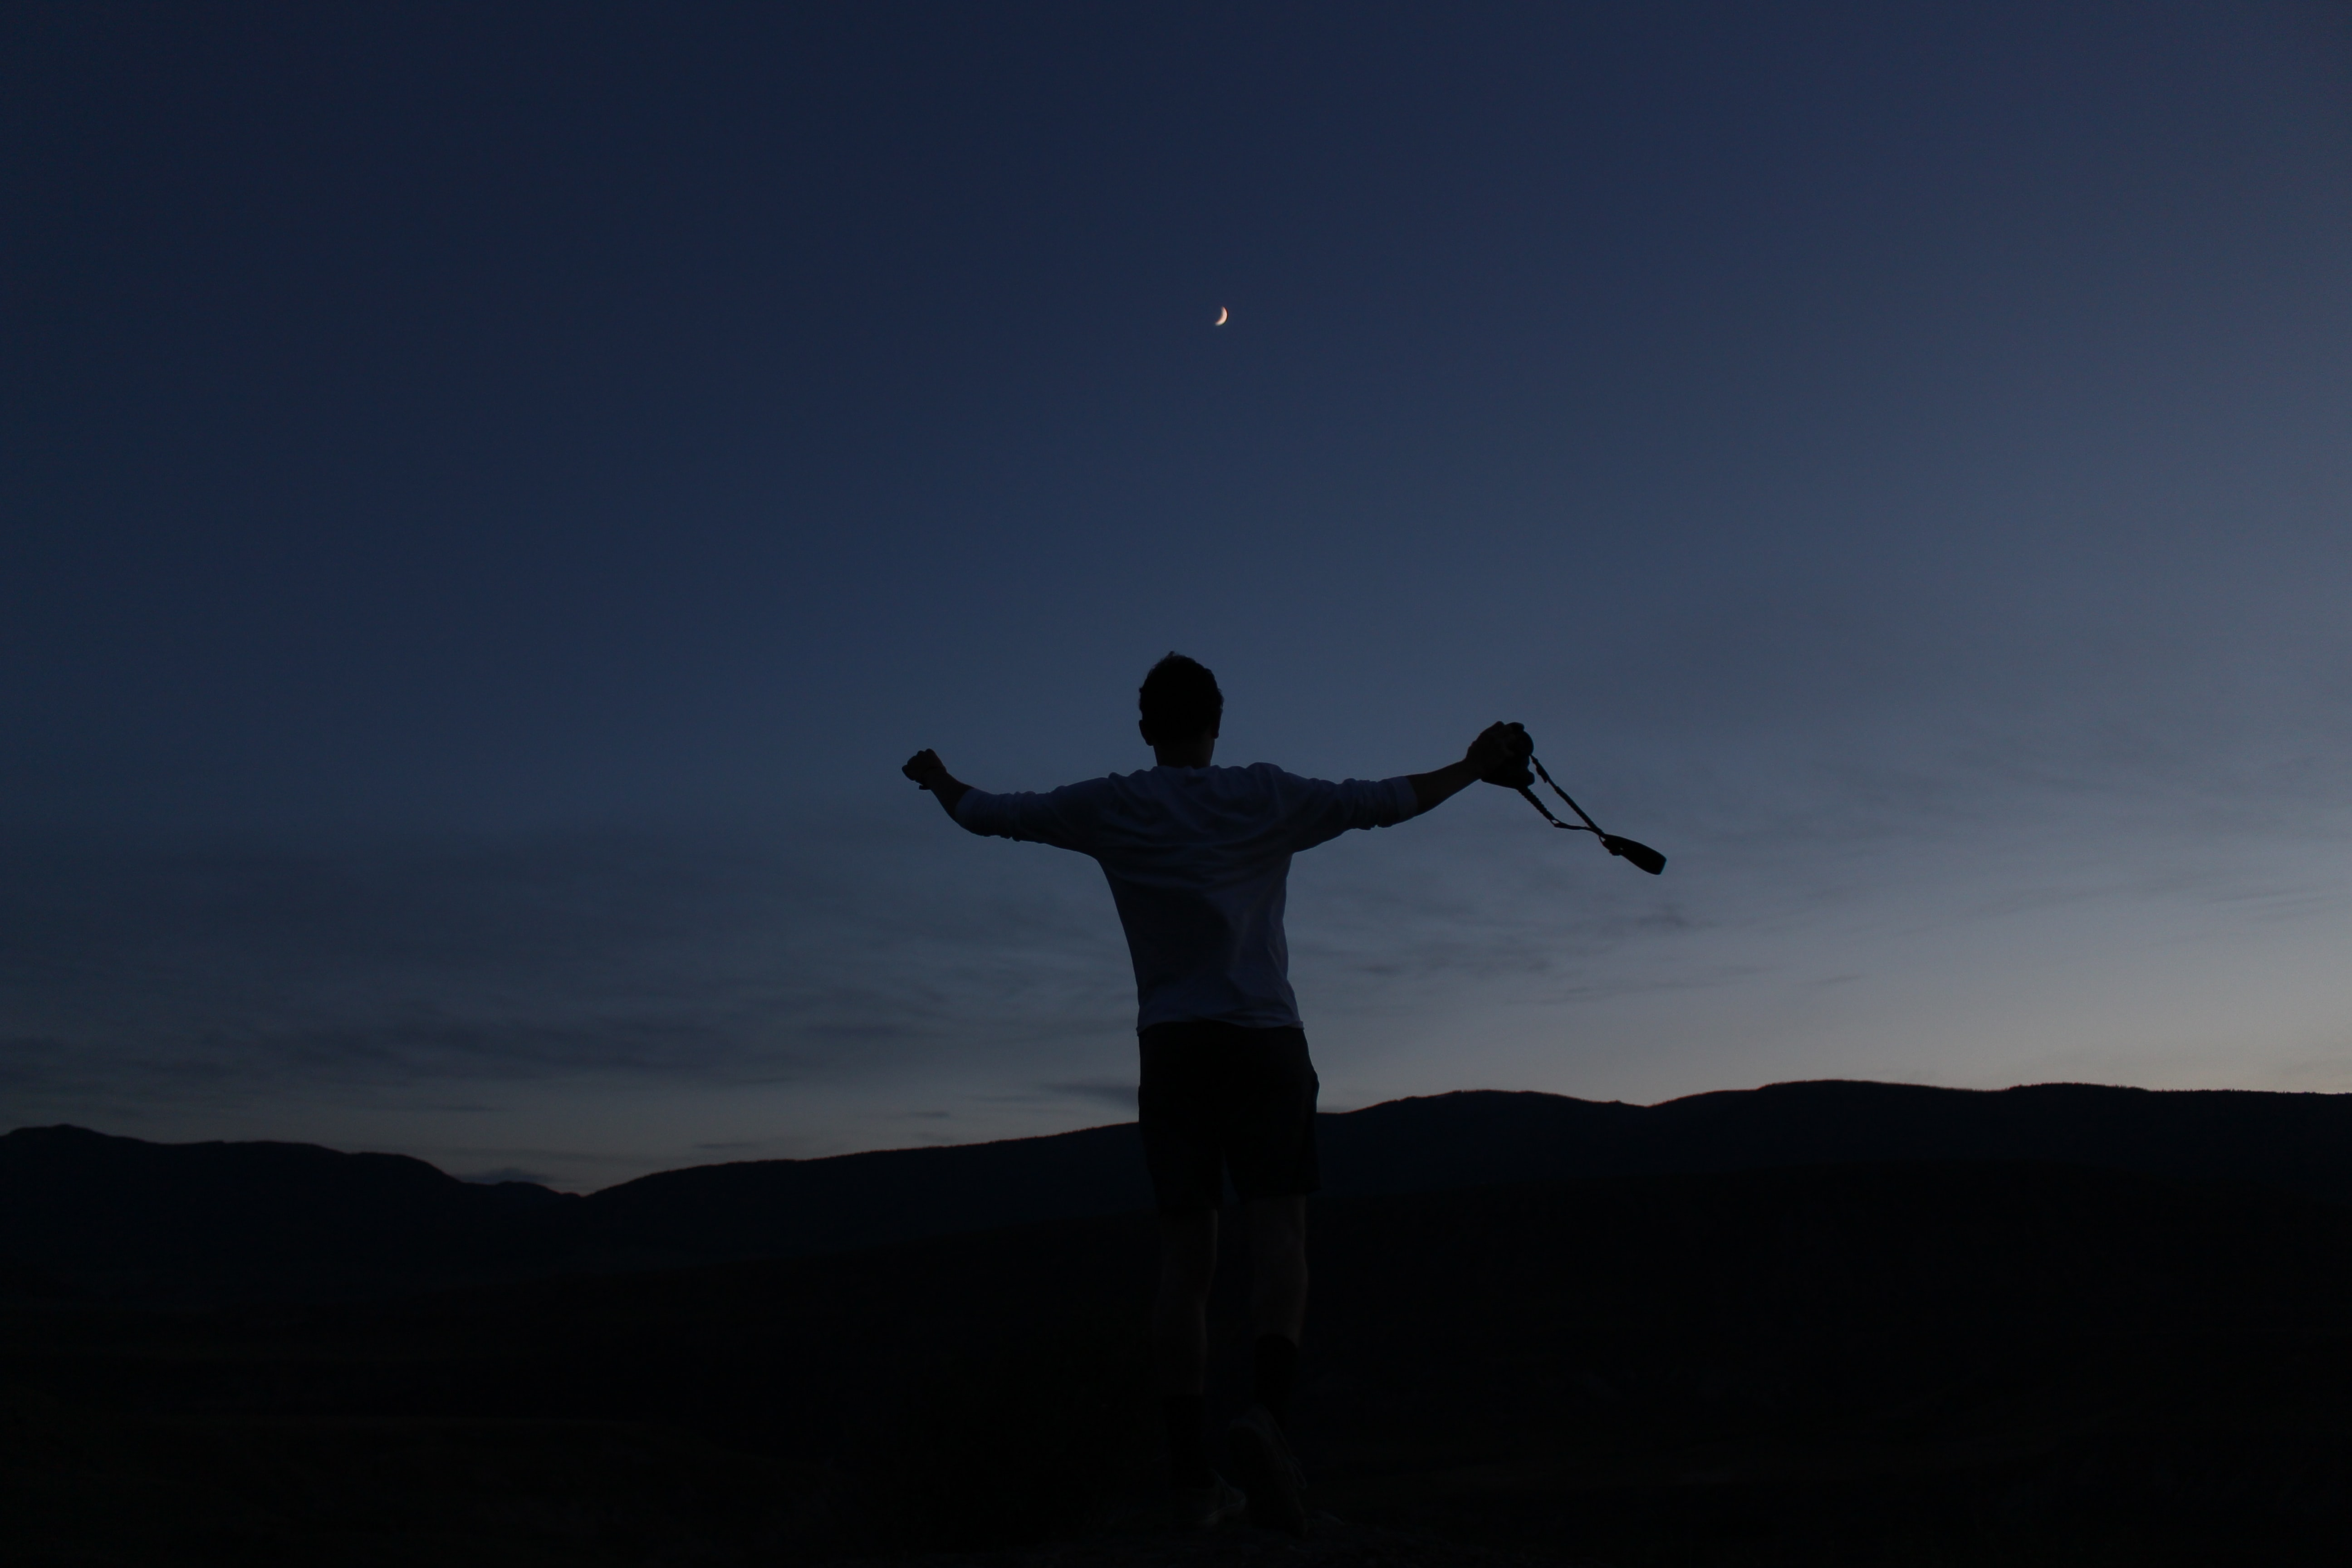 silhouette of man jumping up